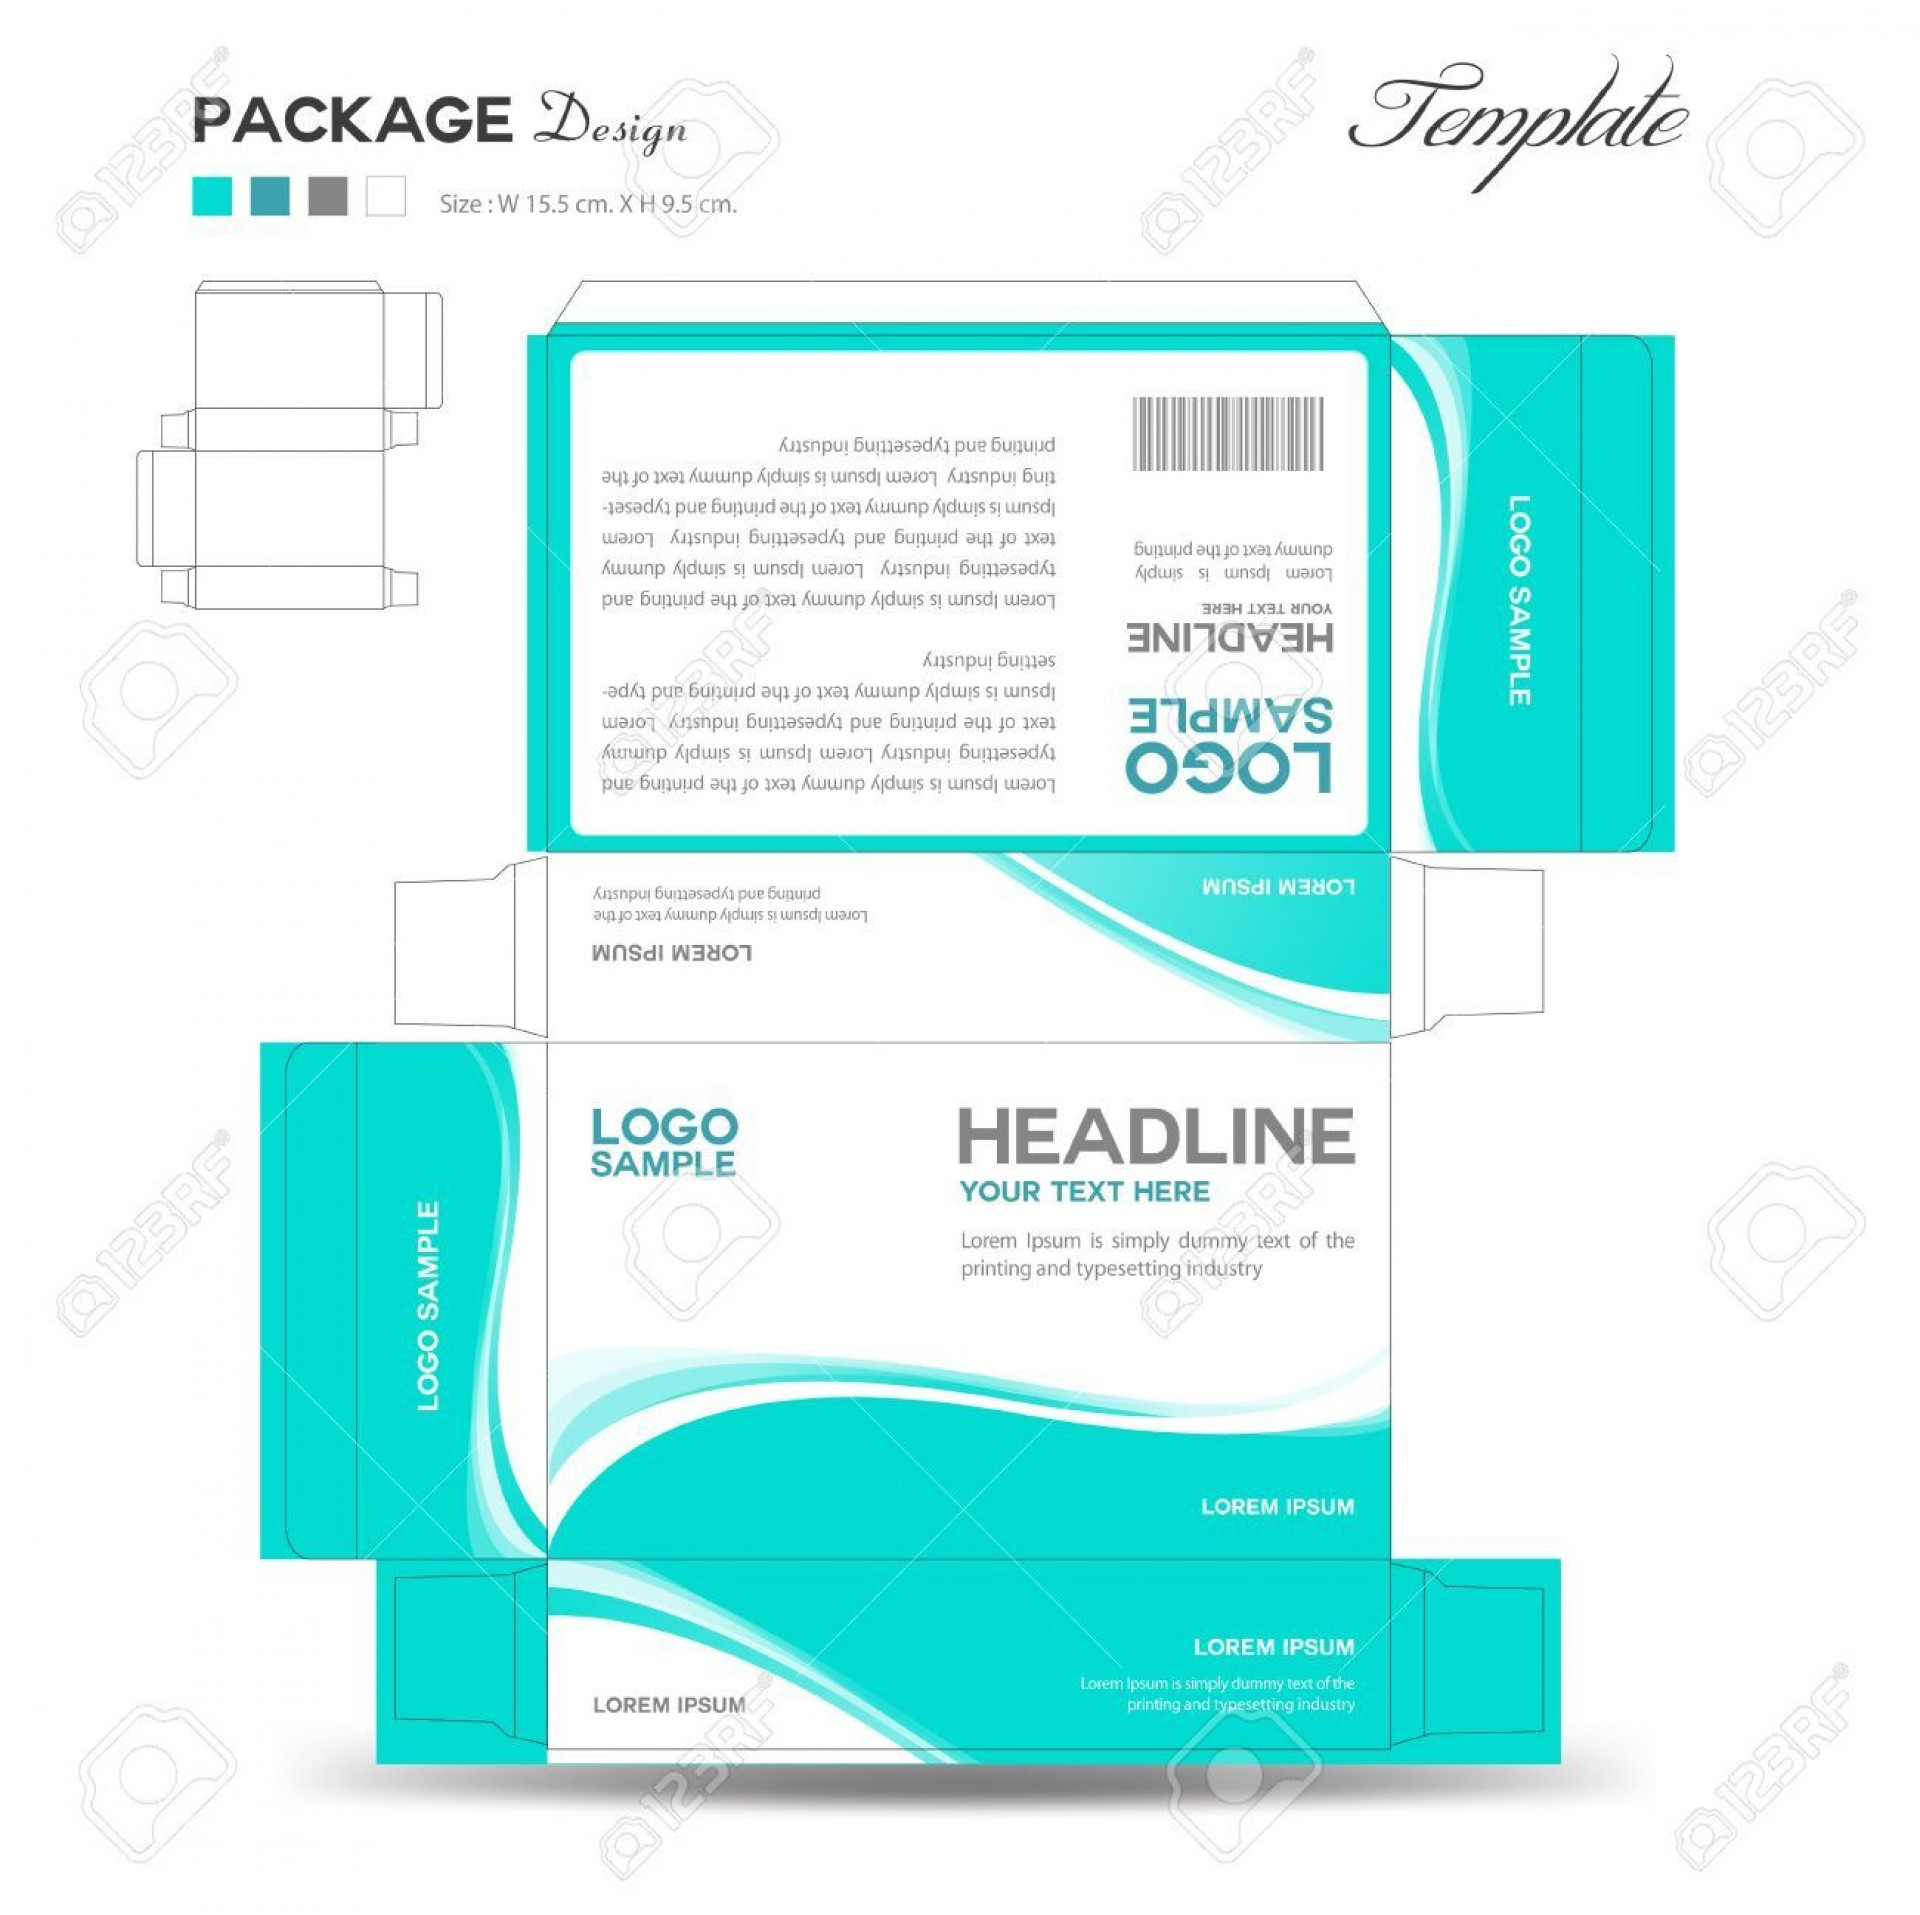 000 Marvelou Product Packaging Design Template Image  Templates Free Download Sample1920